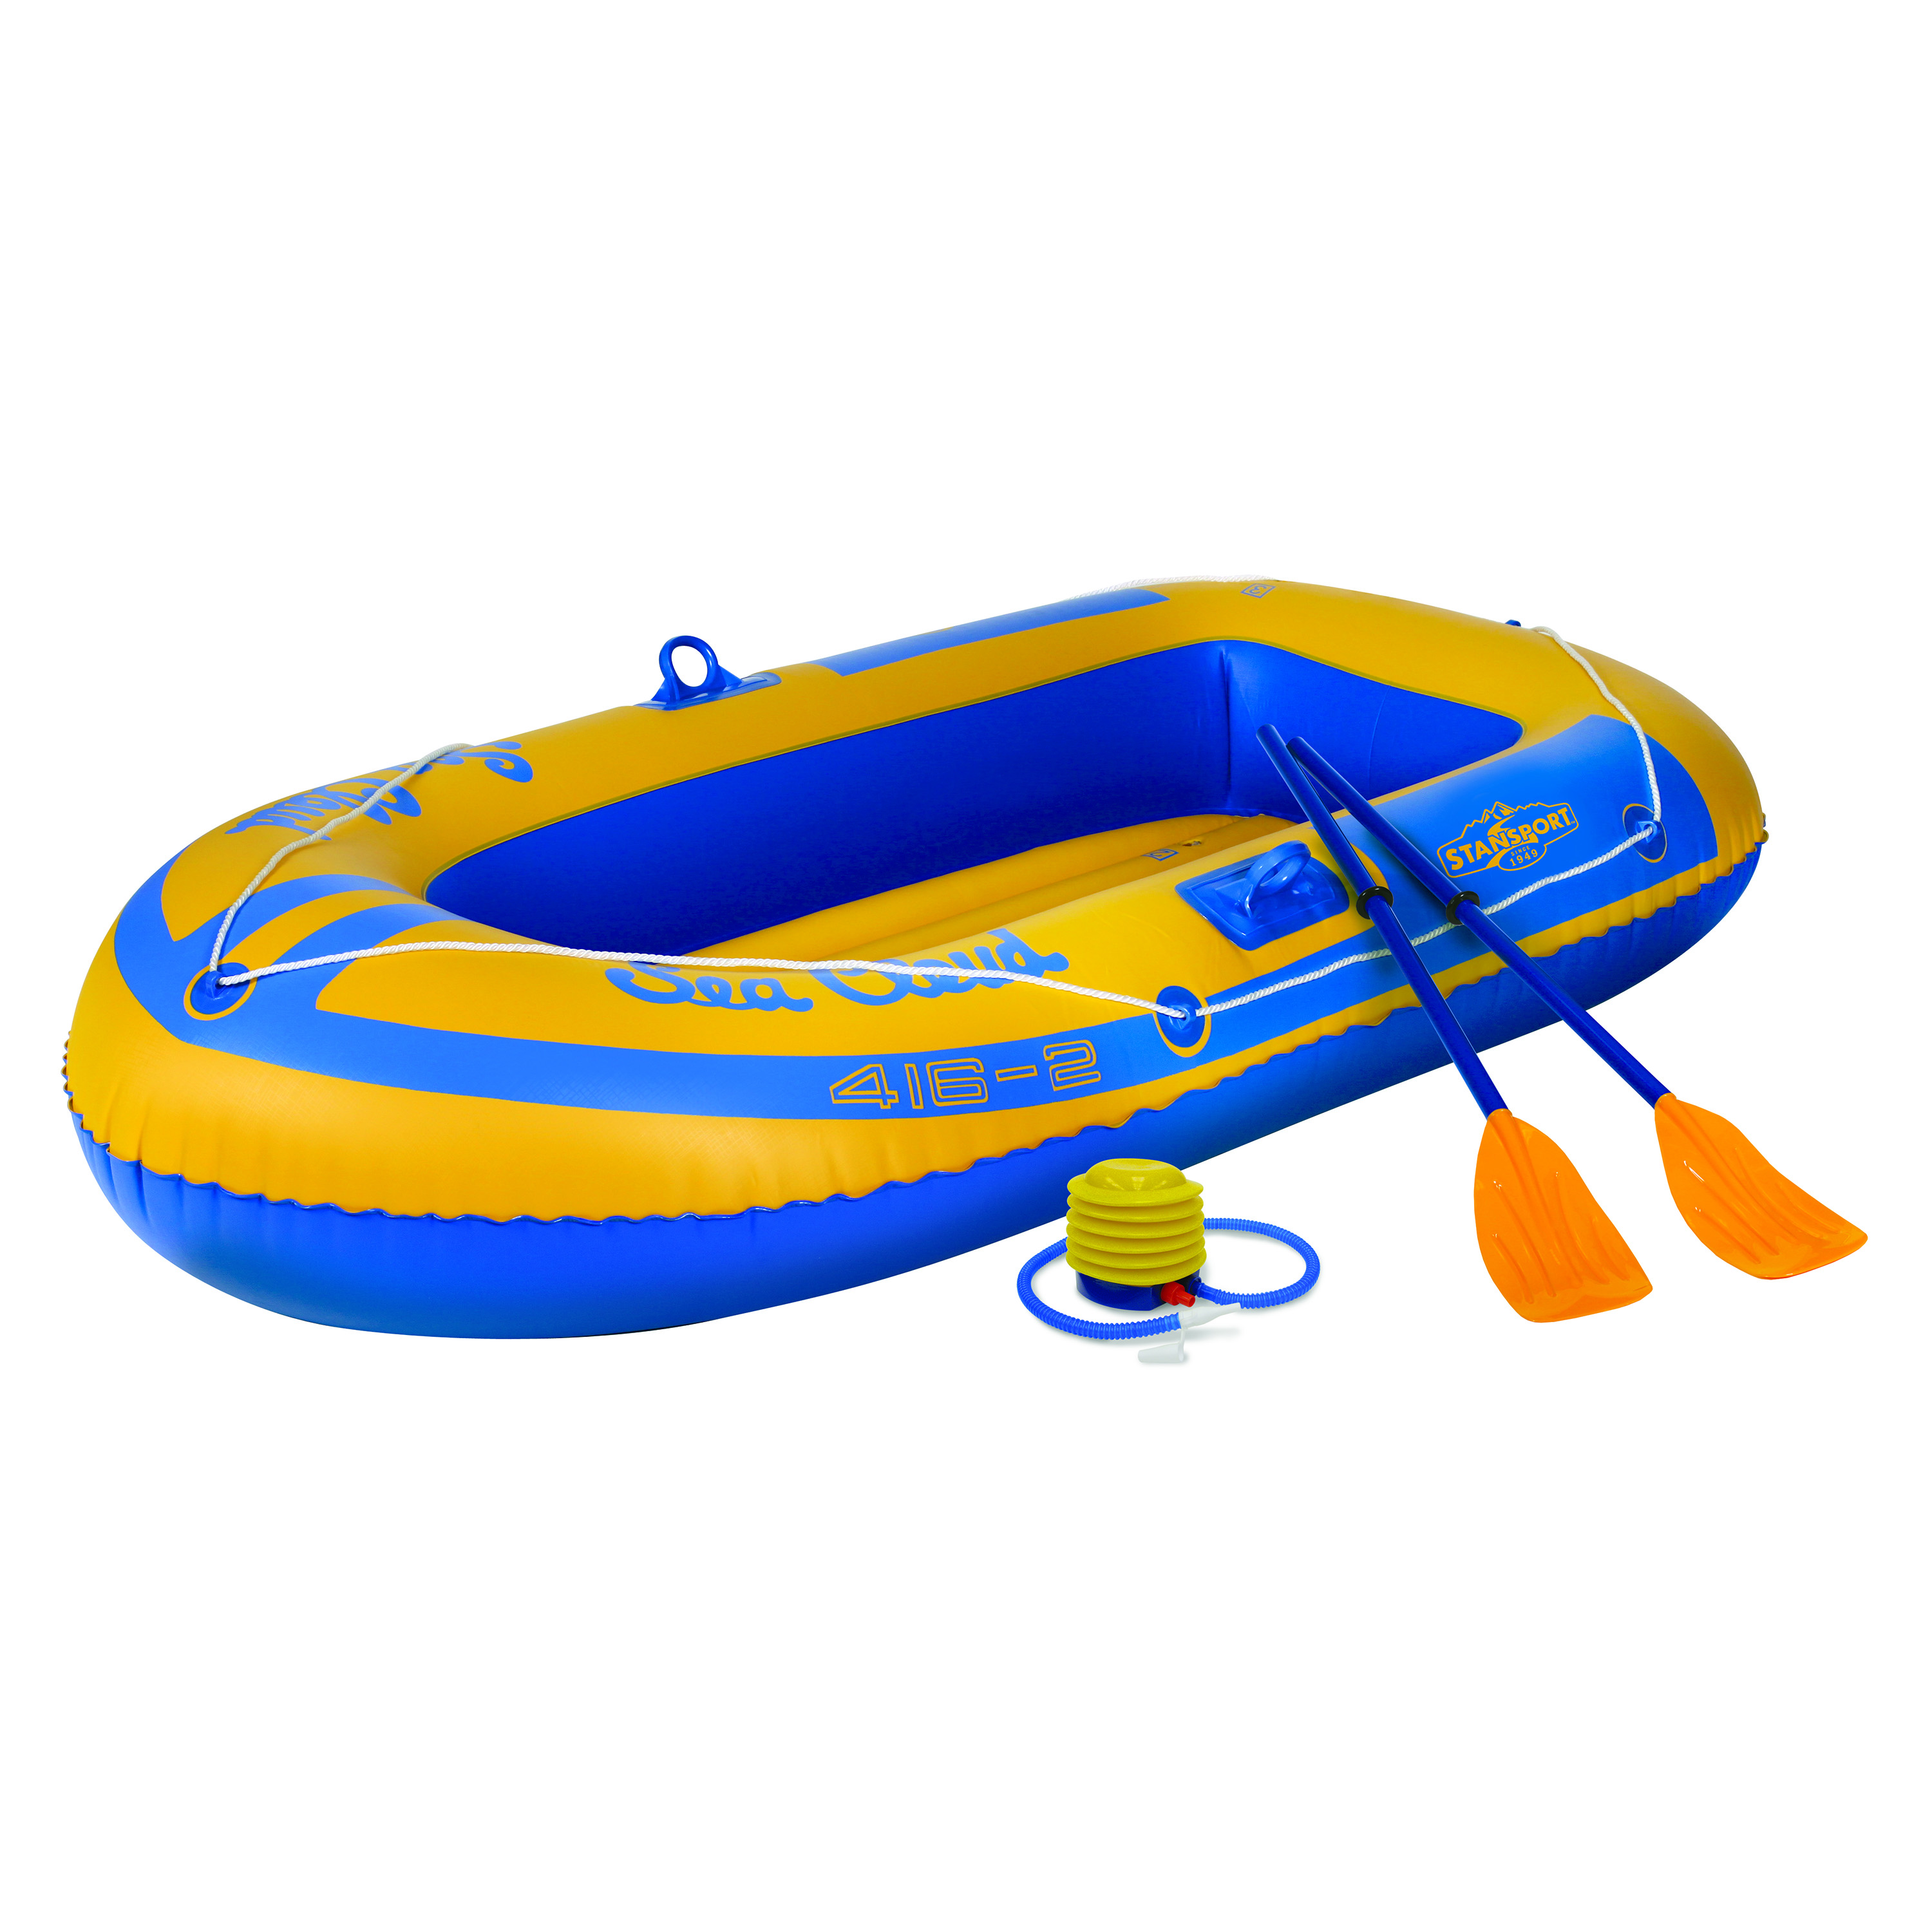 Stansport 2-Person Inflatable Boat - Kit